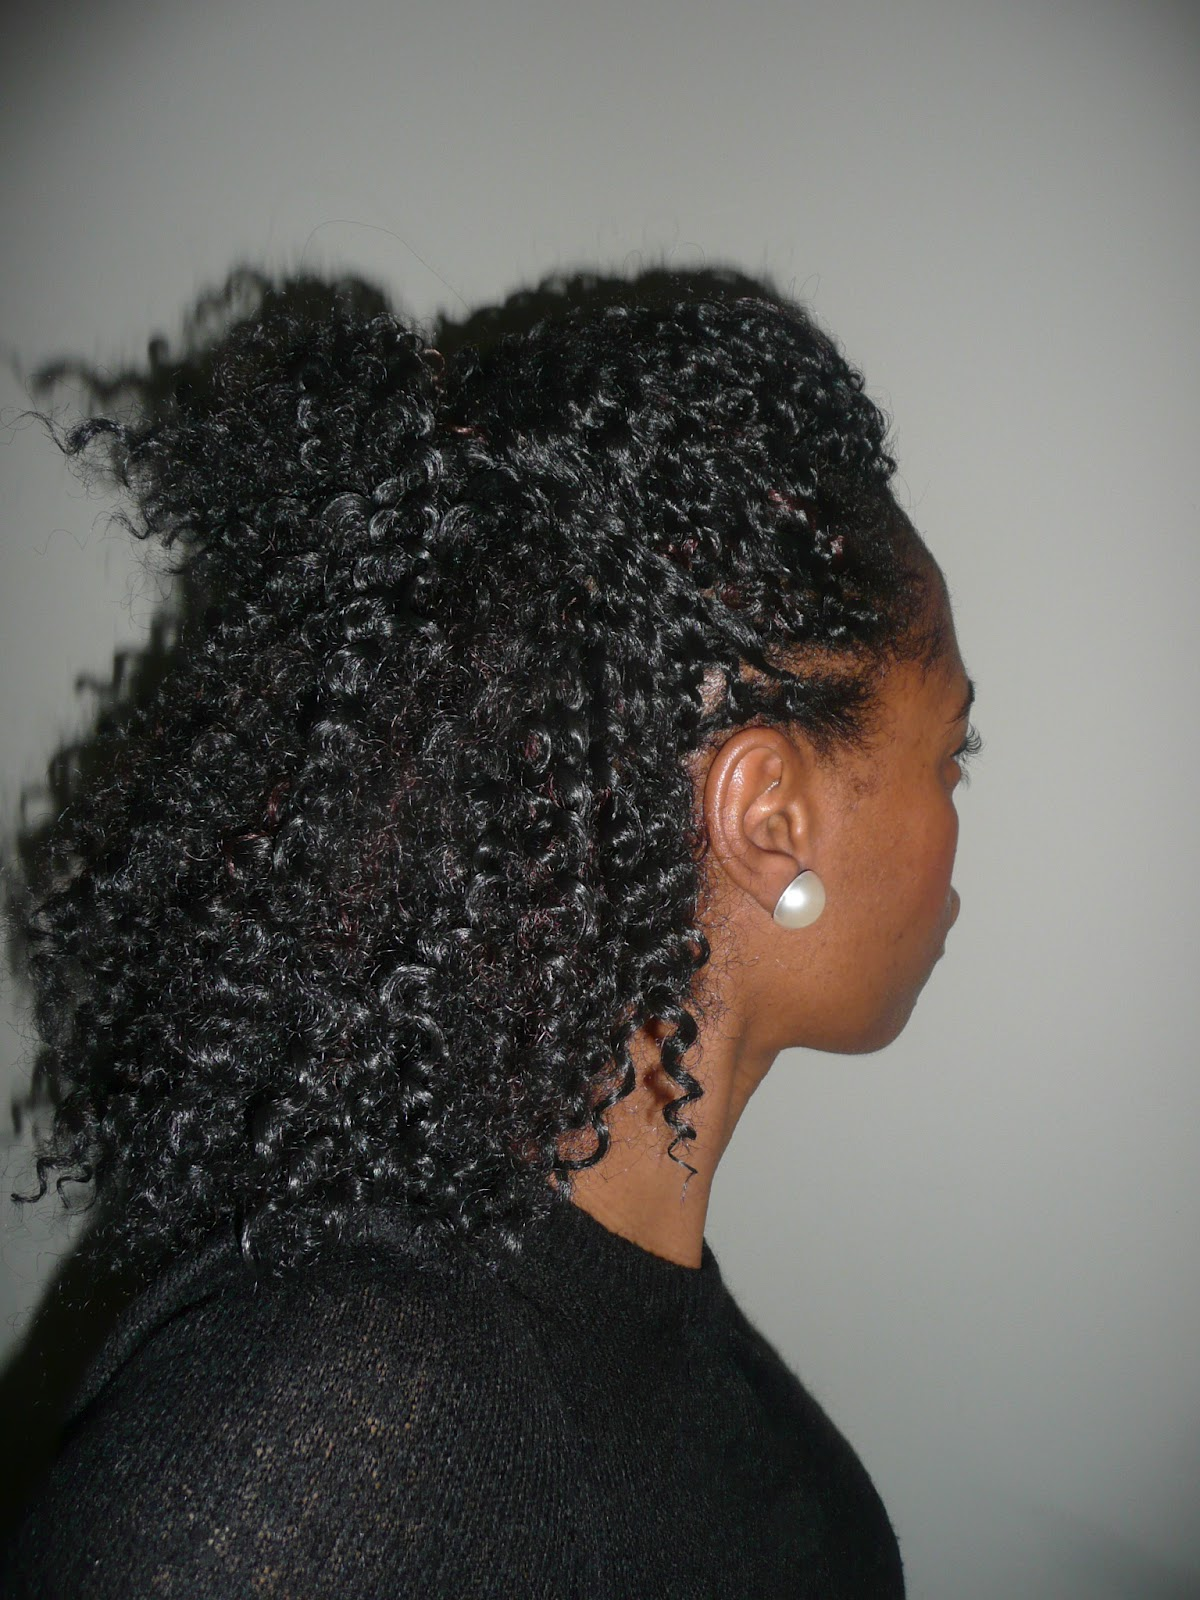 Crochet Braids Grew My Hair : My HAIR Today: Crochet Braid Style #1 Simply Into My HAIR